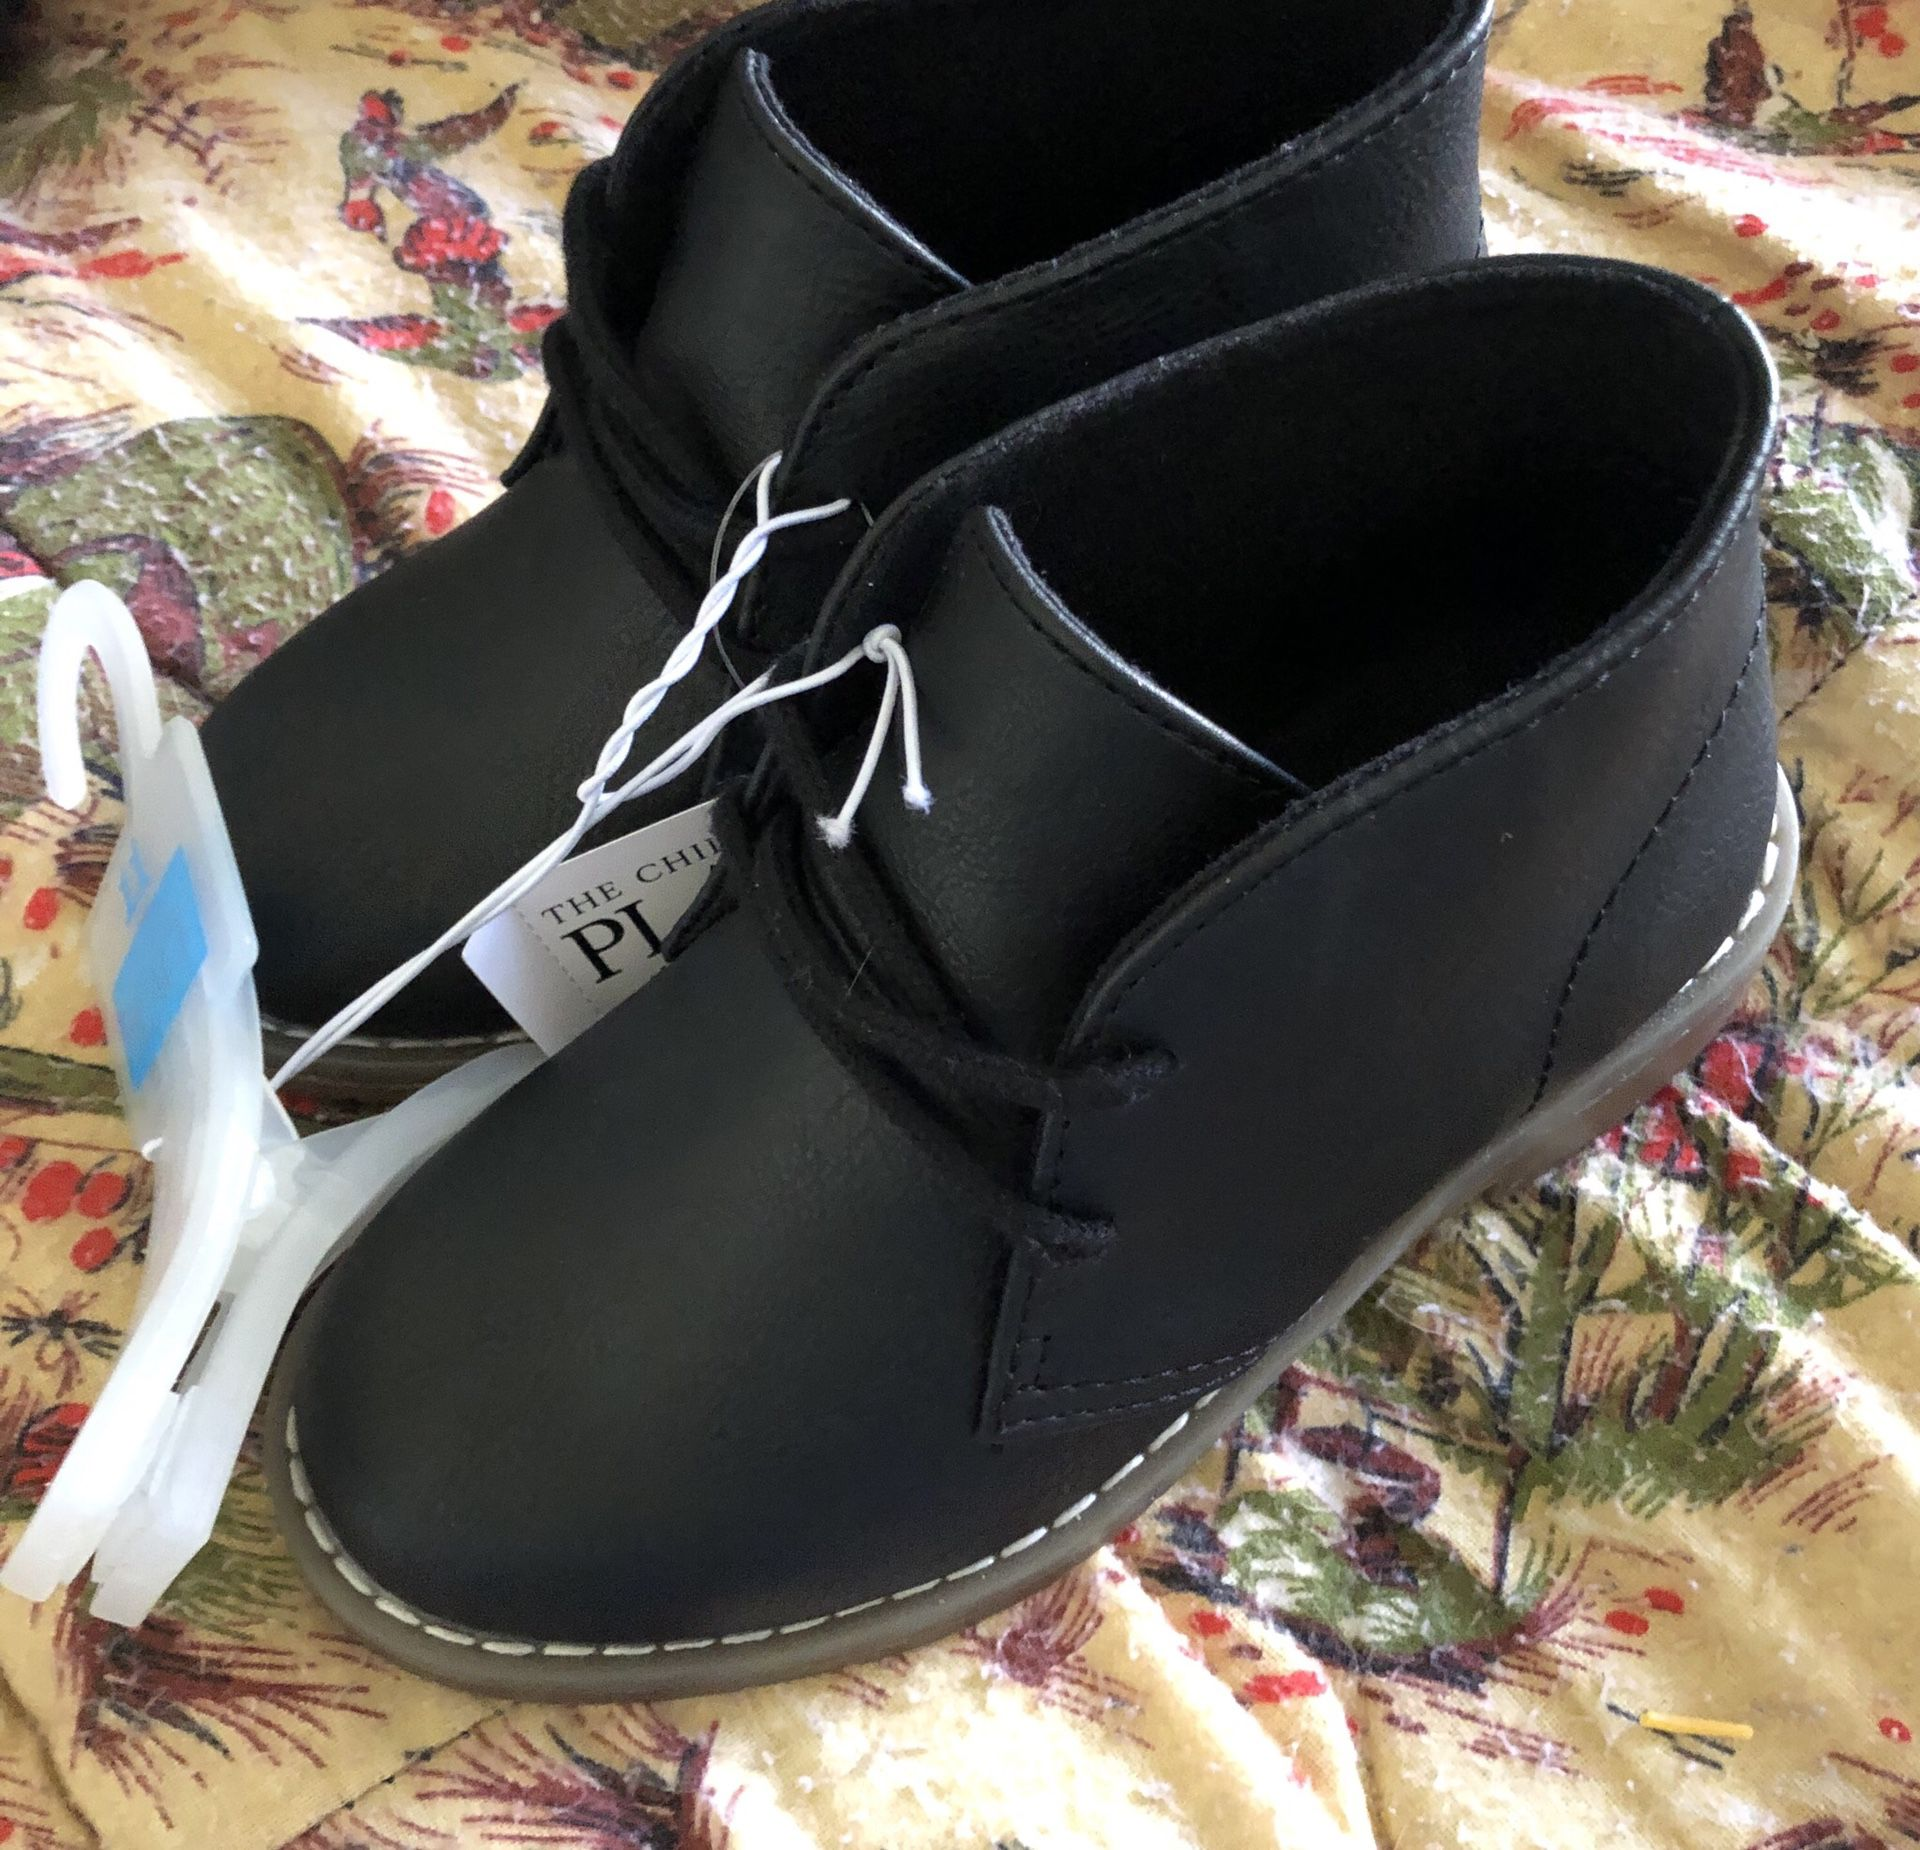 Toddler boys size 11 shoes